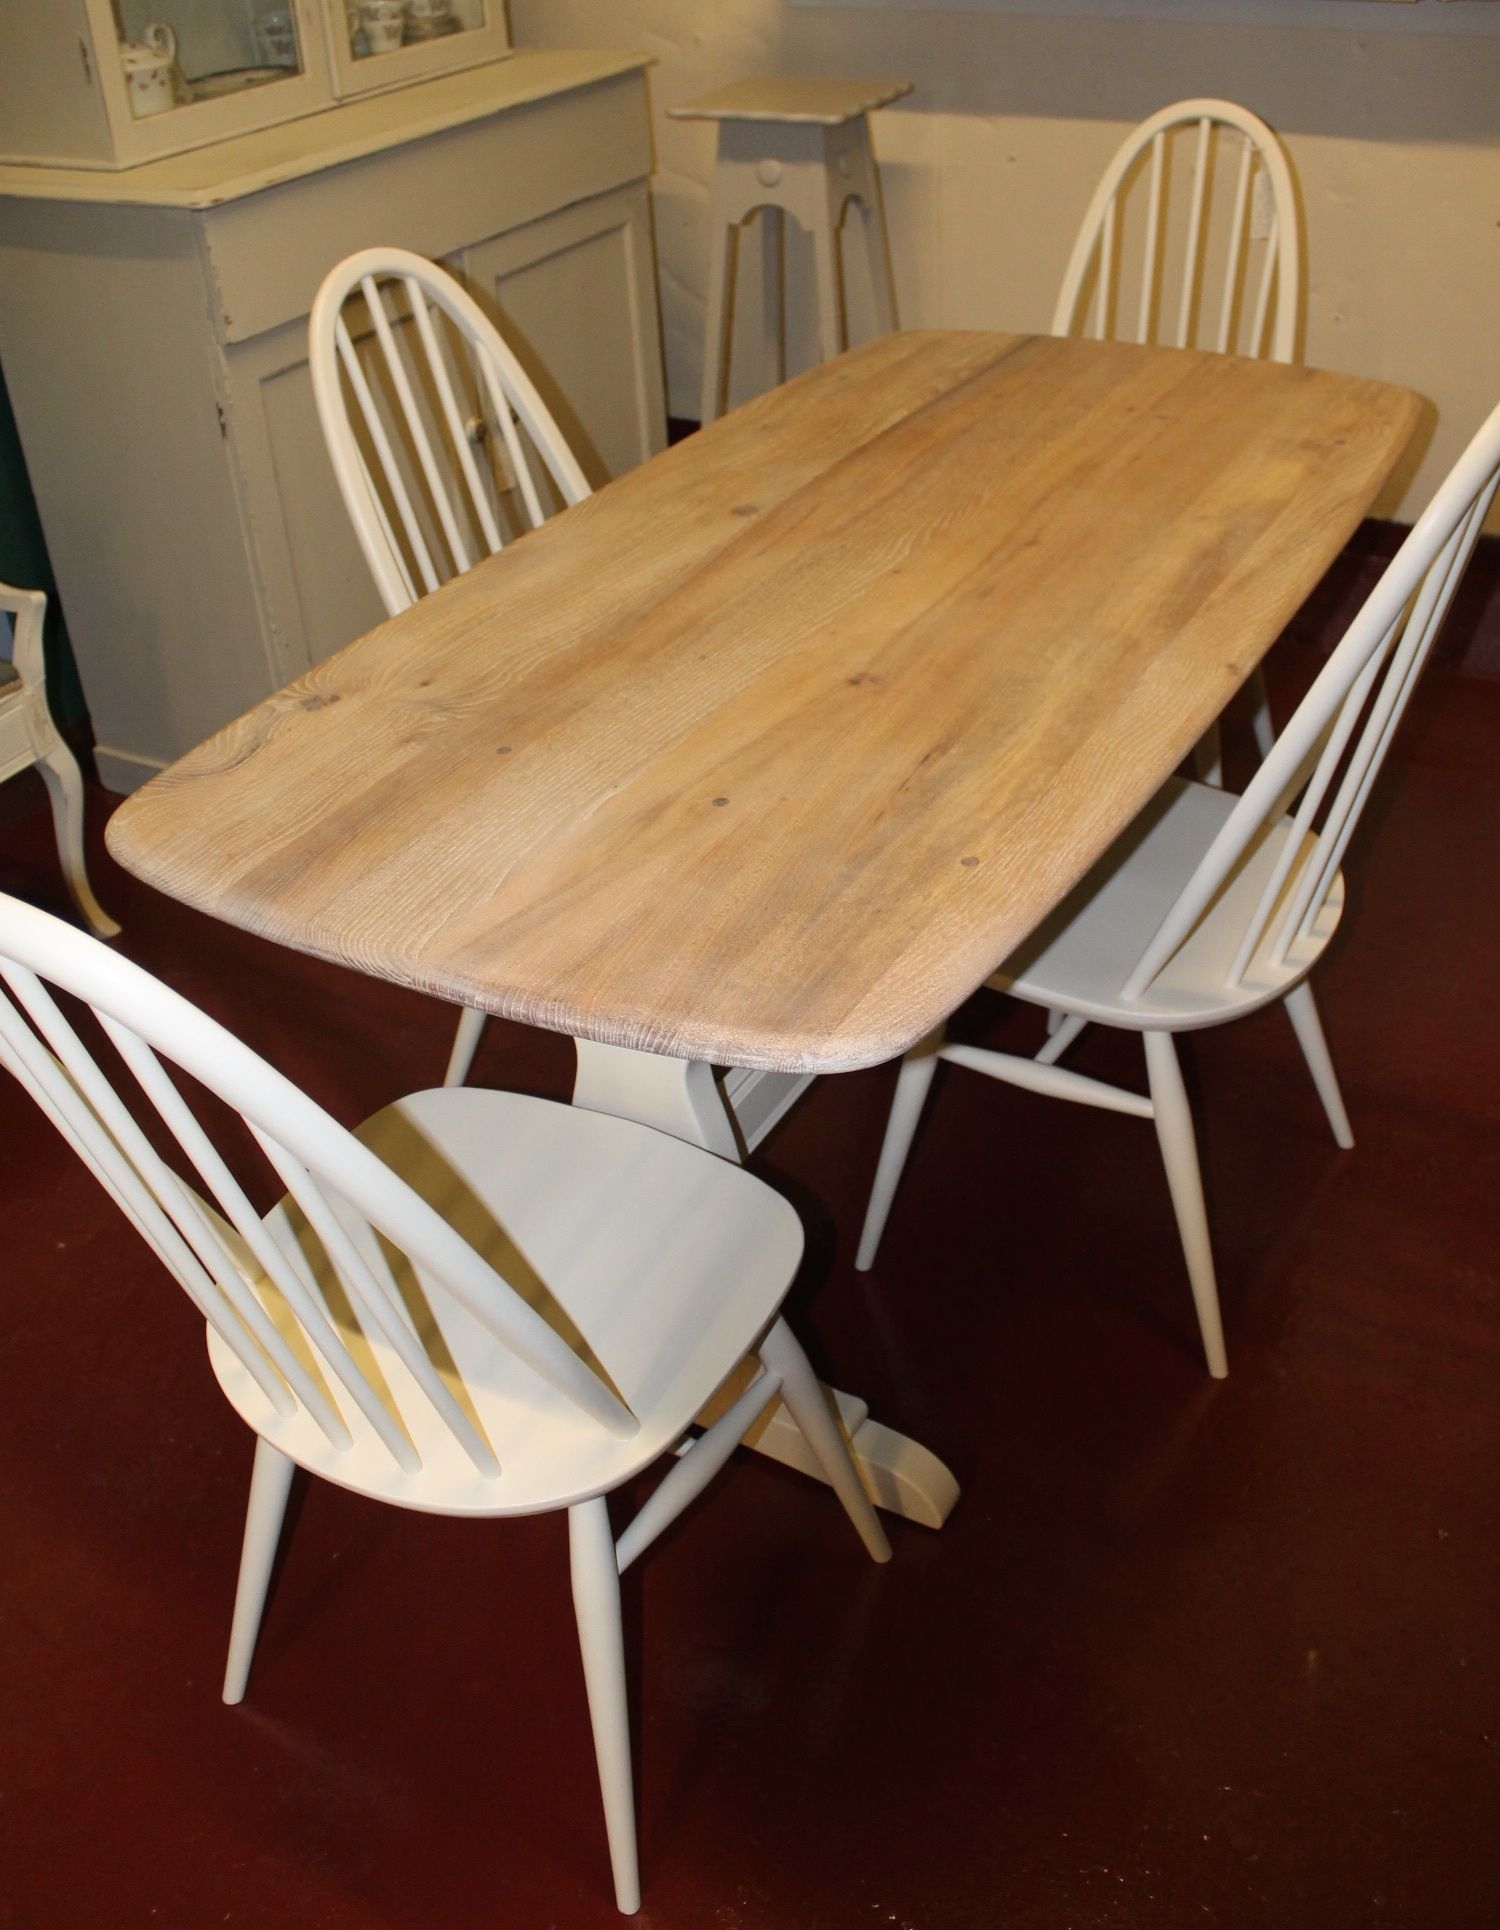 ercoldiningtableandfourchairs 36500 furniture in 2019